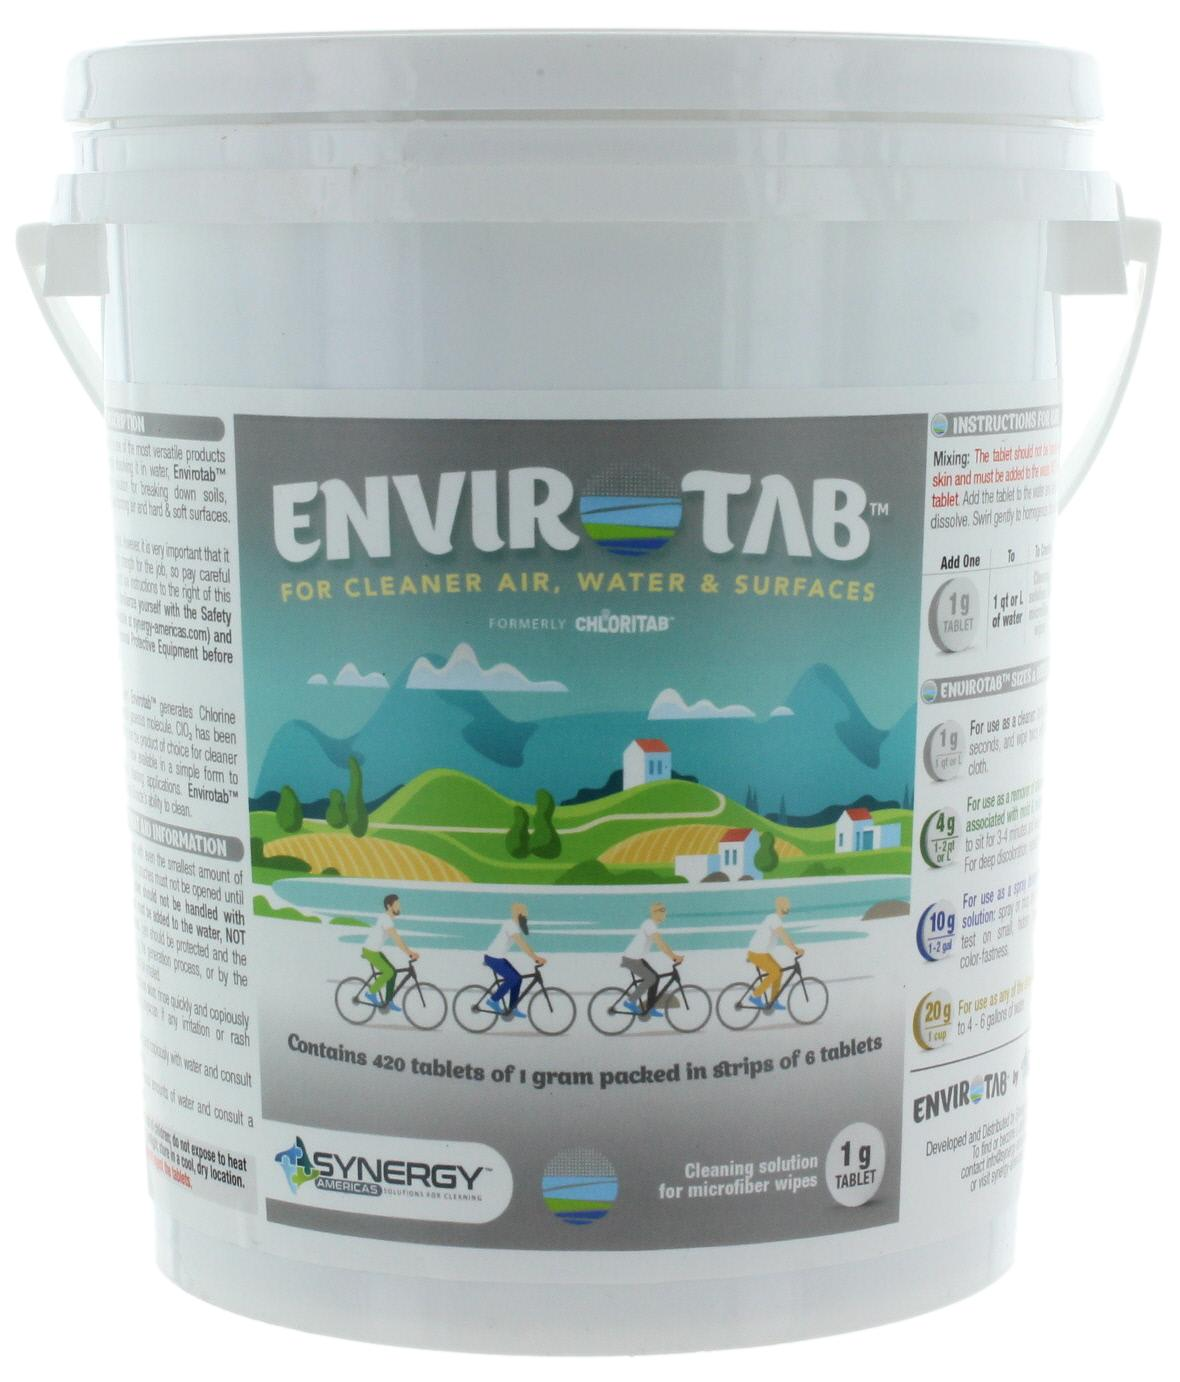 Envirotab for Cleaning 420 x 1g tablets/pail - Sanifog Safety Supplies